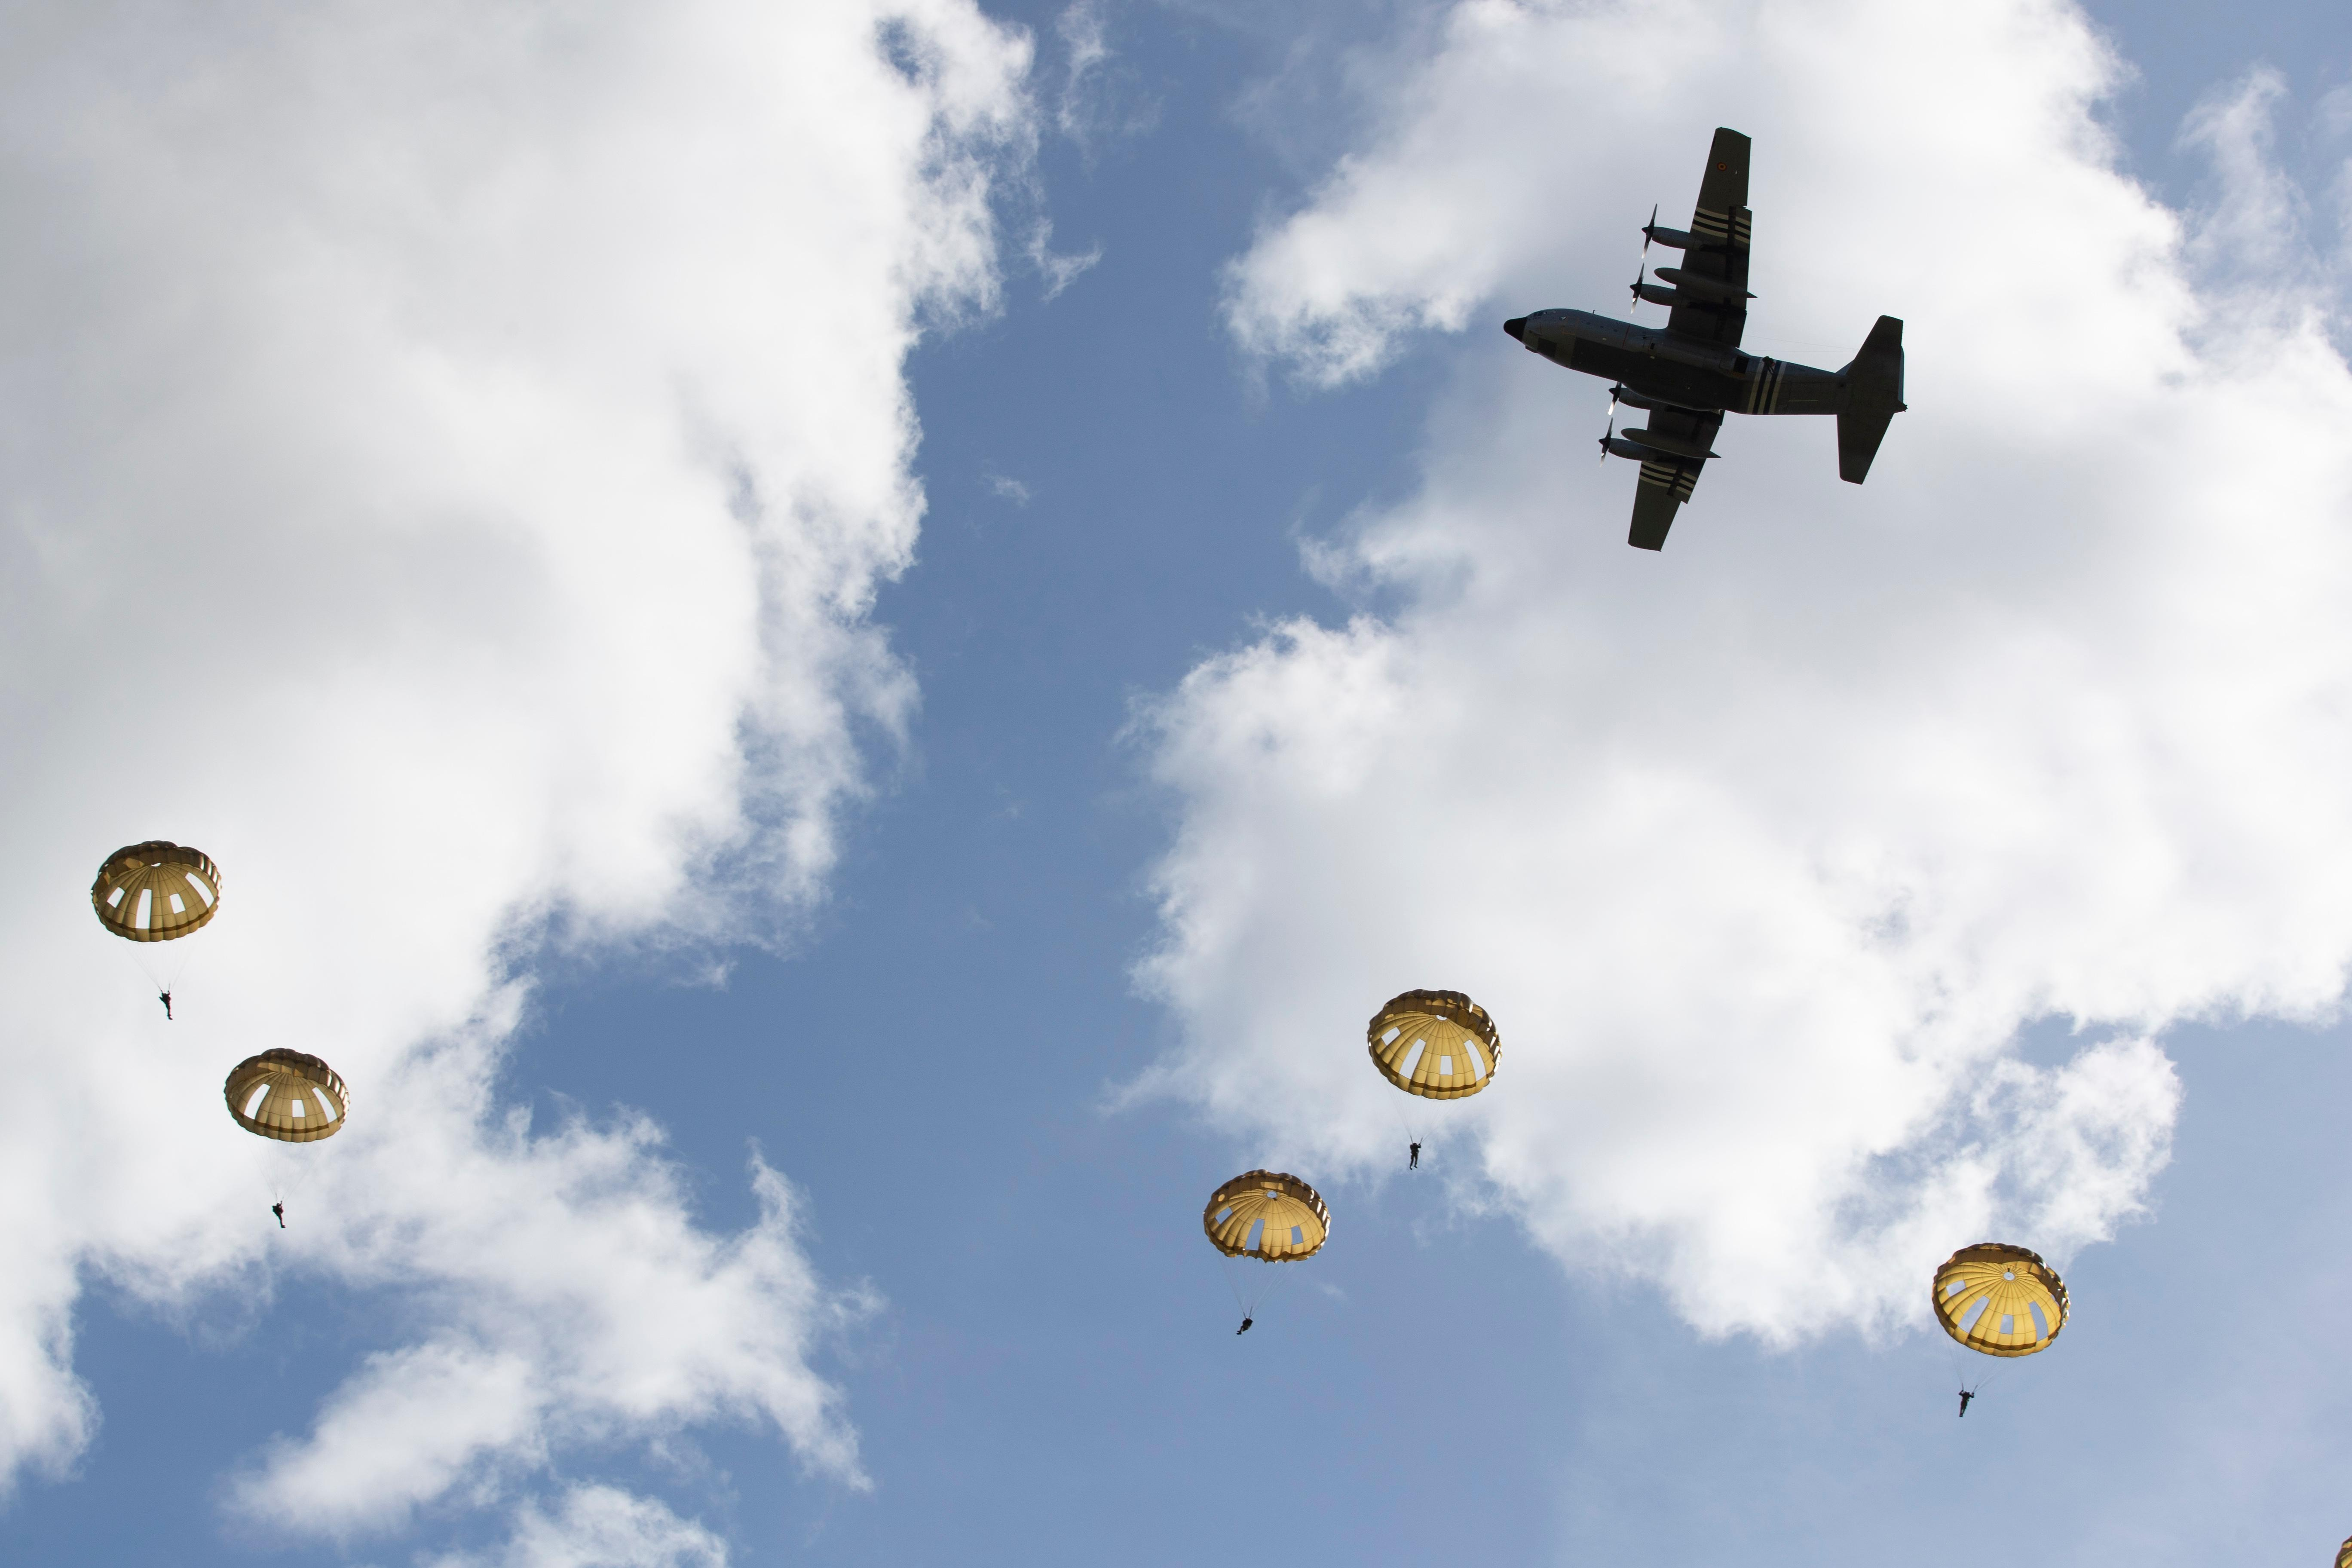 Parachutist jump from a plane near Groesbeek, Netherlands, Thursday, Sept. 19, 2019, as part of commemorations marking the 75th anniversary of Operation Market Garden, an ultimately unsuccessful airborne and land offensive that Allied leaders hoped would bring a swift end to World War II by capturing key Dutch bridges and opening a path to Berlin. (AP Photo/Peter Dejong)